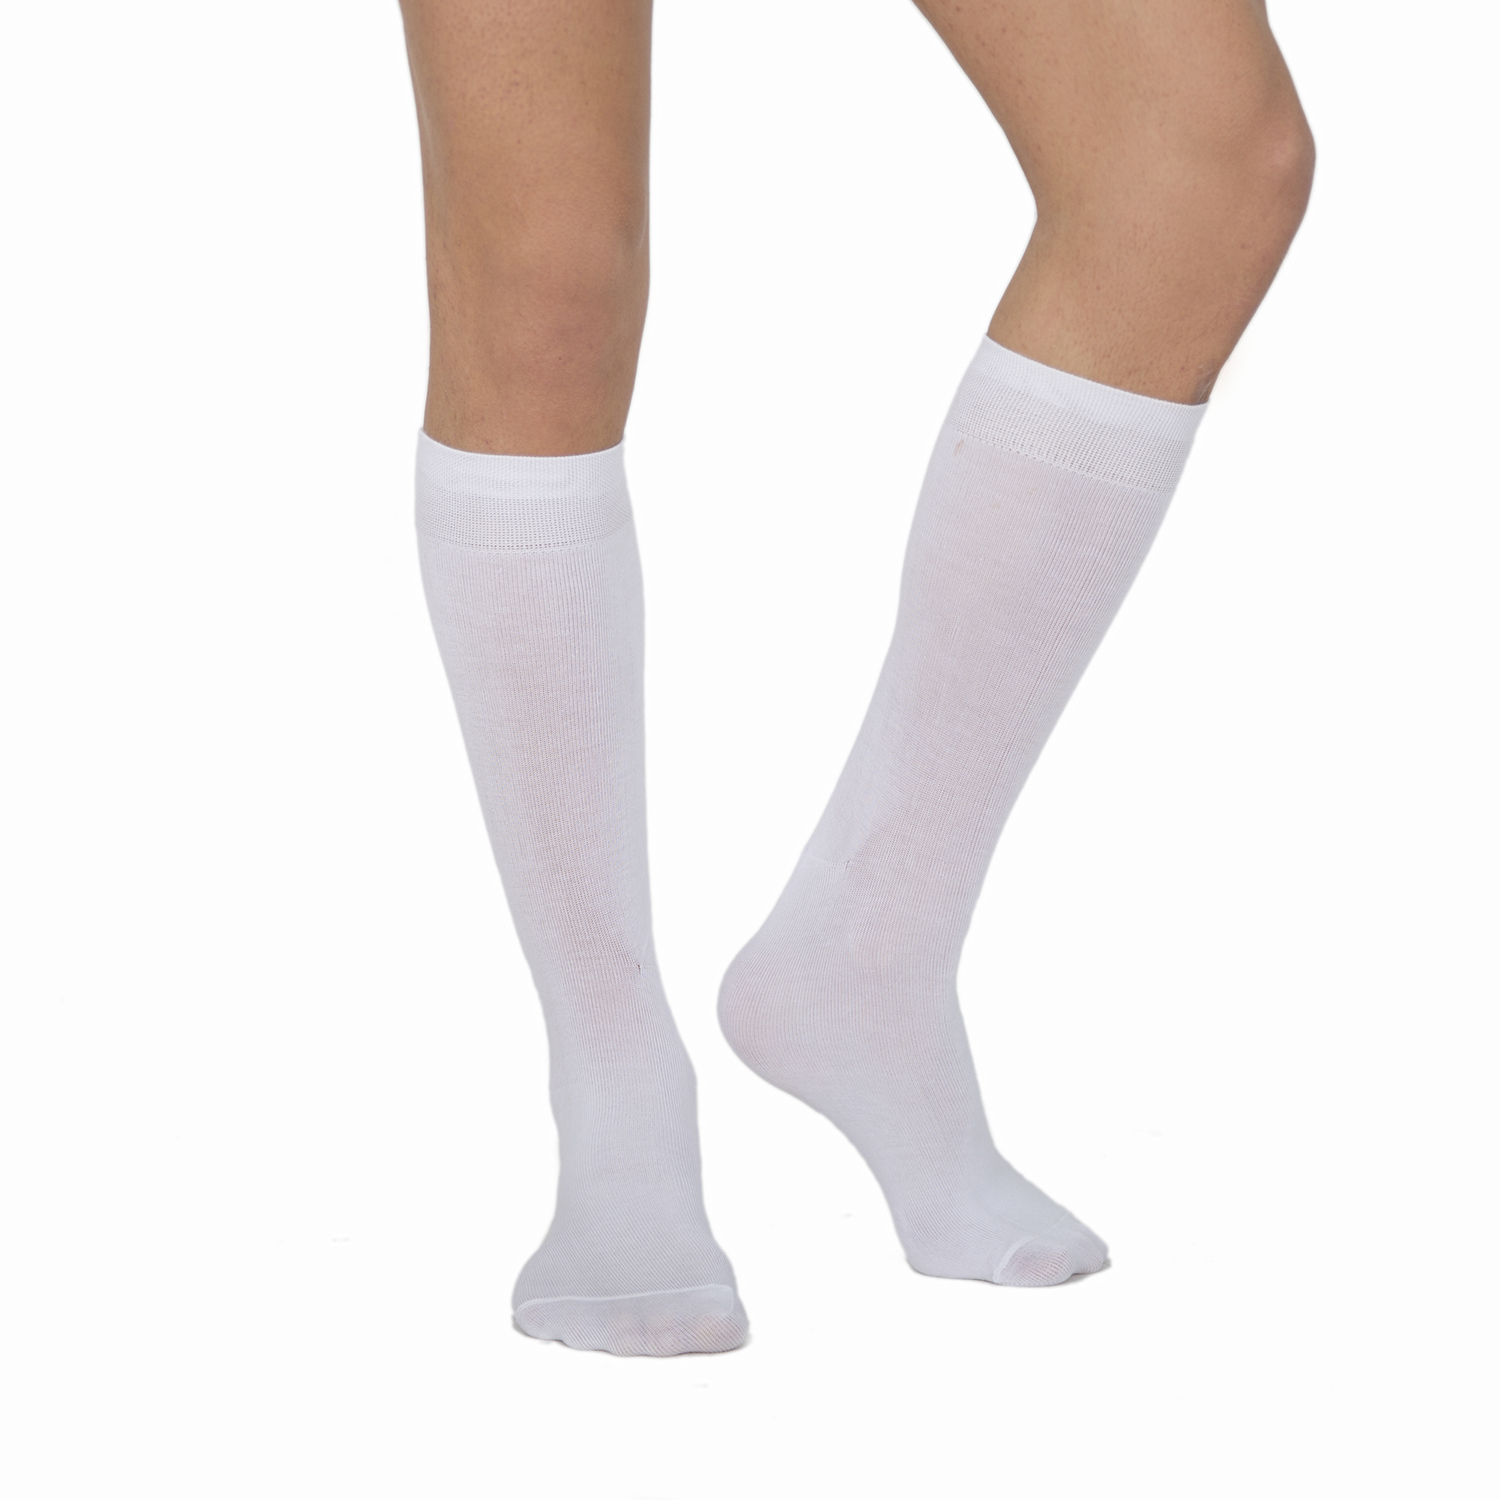 Bamboo Socks For Men Soft And Comfortable These Socks Will